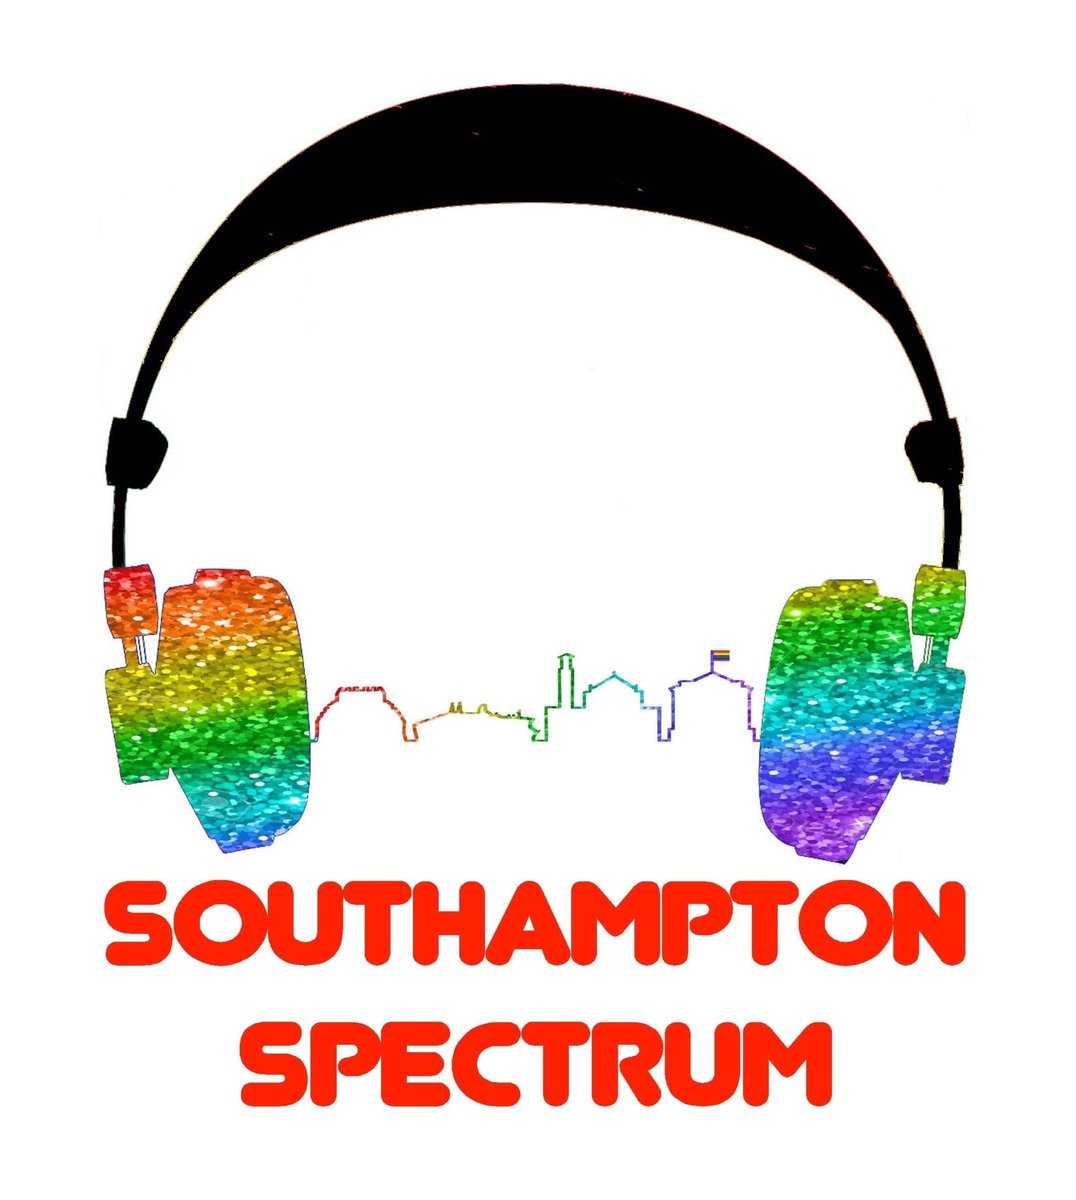 Today from 3-5! We have the usual horrible country of the week, lgbt+ history month,  a to z of queer hampshire queer news and lots of music on Southampton spectrum. We also have Lewis from breakout youth in to talk about the charity with @DanLGBT and Lou #radio #lgbtq